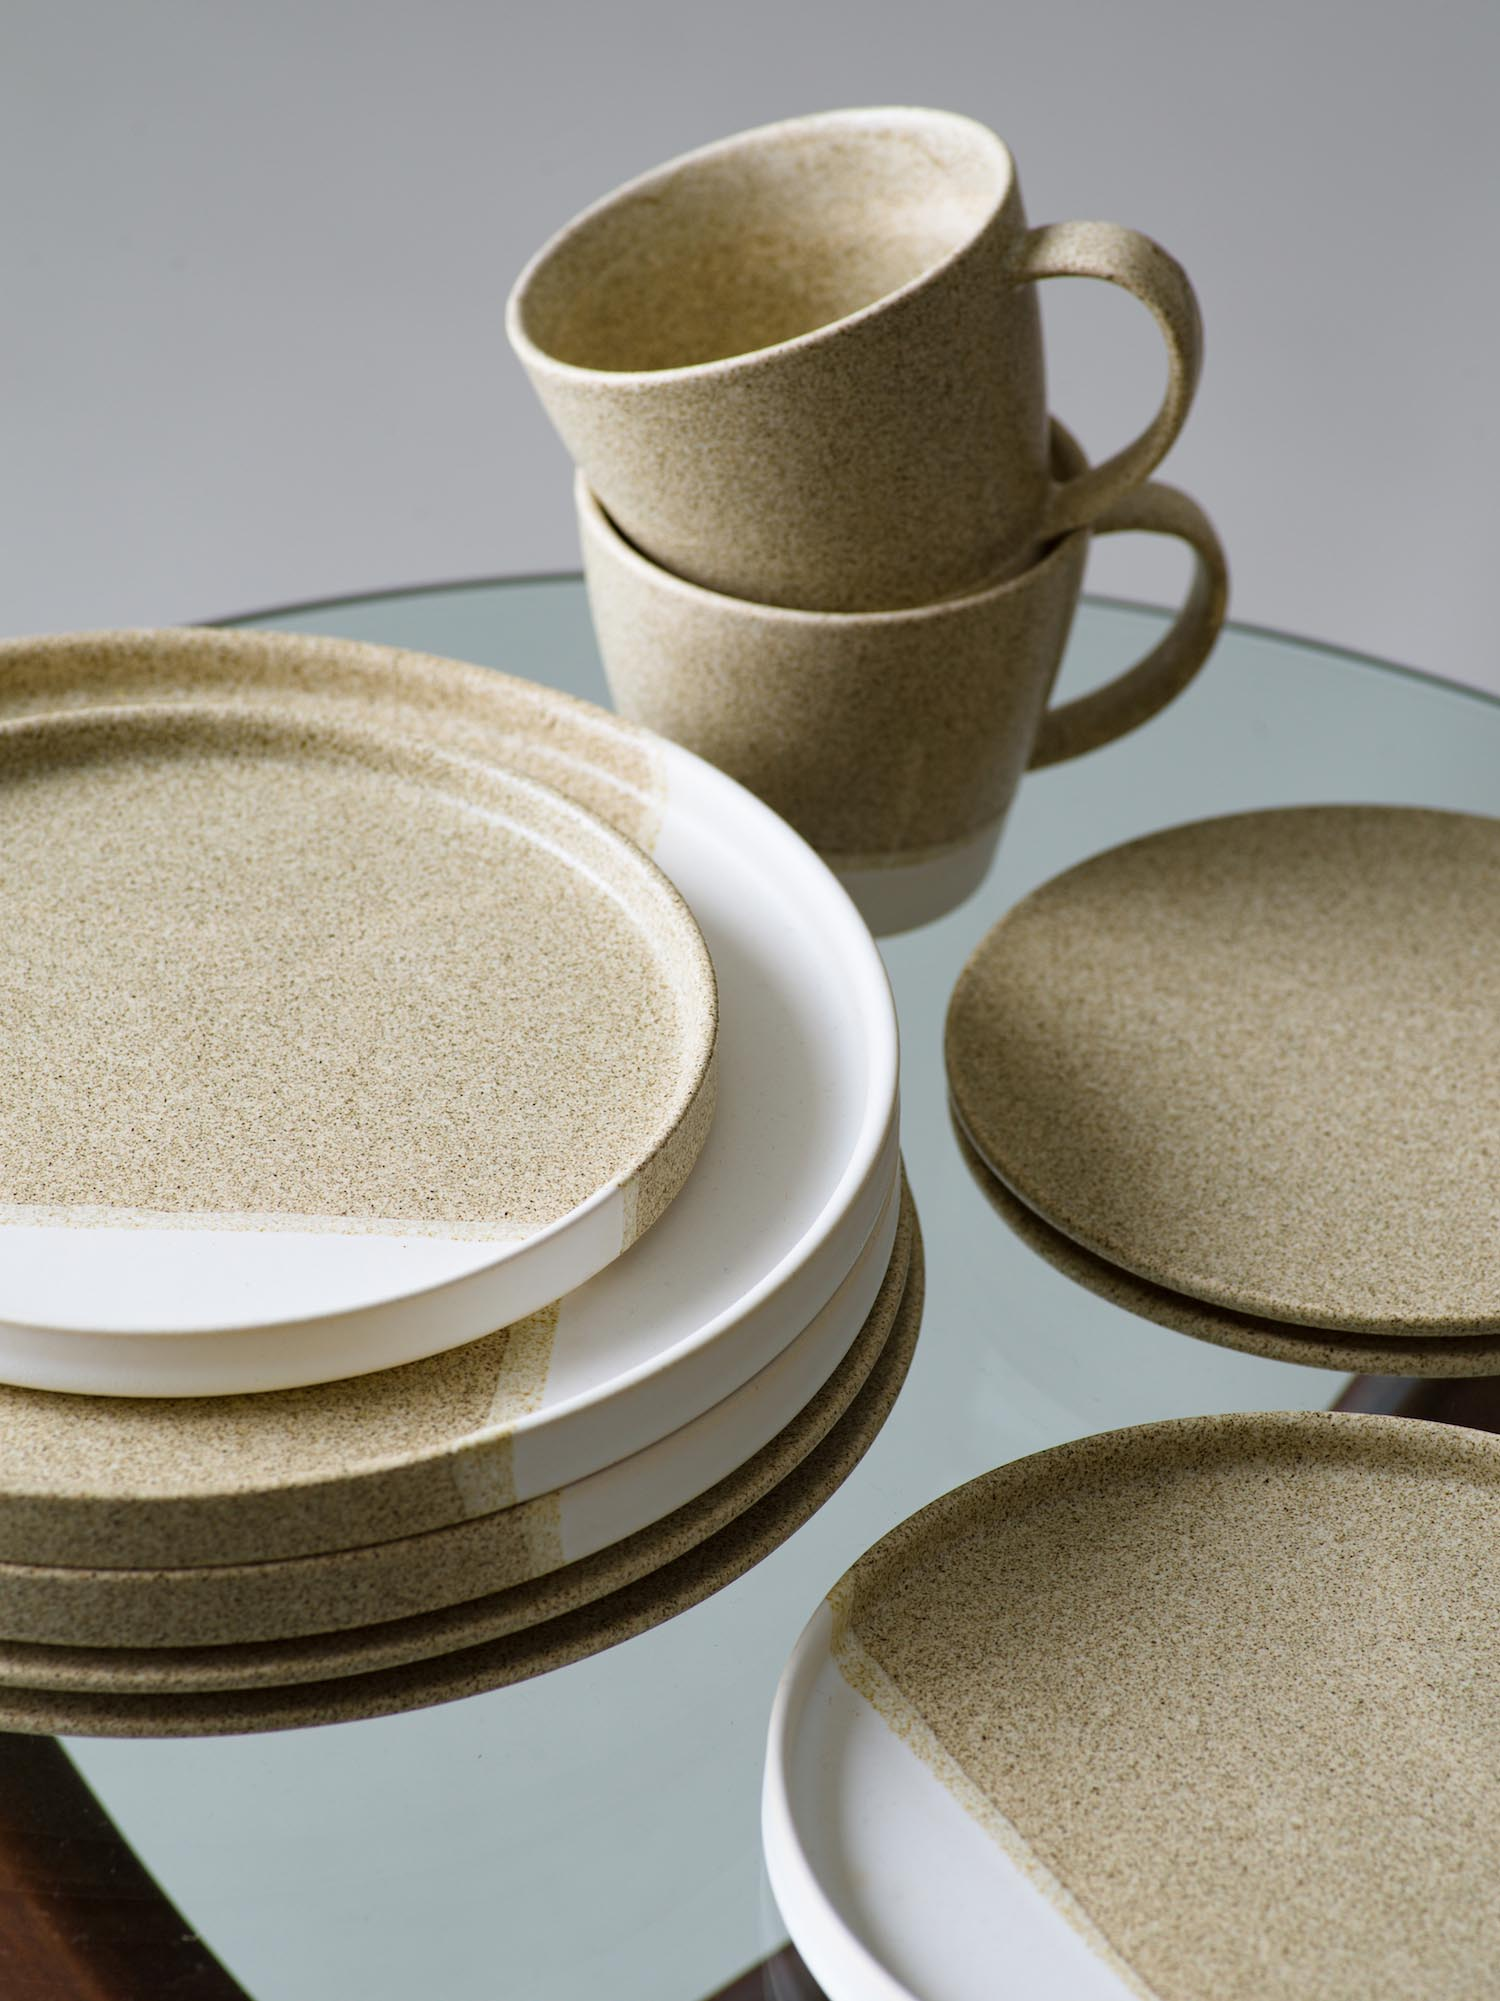 16 plate(S) ¥2,640 plate(M) ¥4,180 flat plate ¥2,200 coffee cup ¥1,760